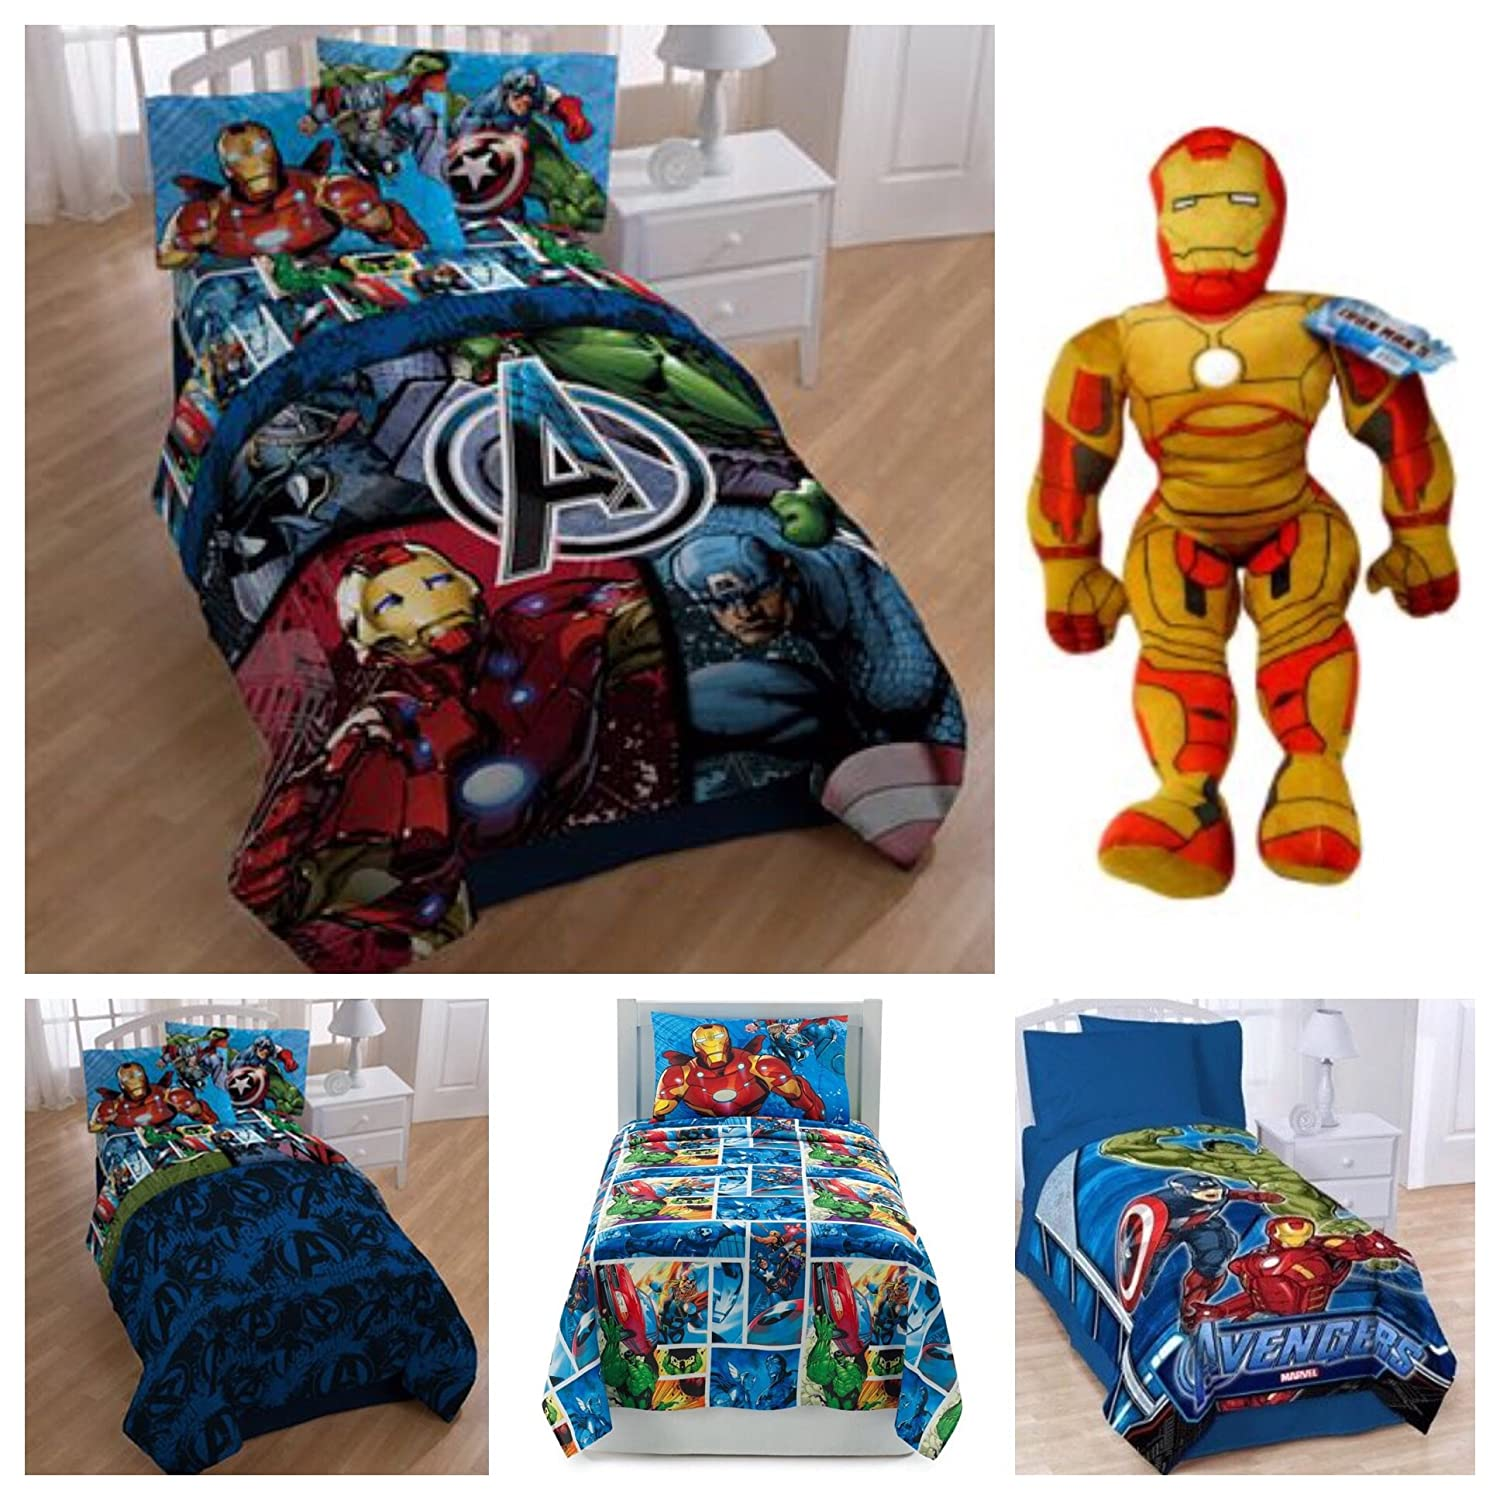 s bedding pillowcase comforter getimage twin with url shld avengers marvel net sheets reversible set com rialtodeals tote piece disney